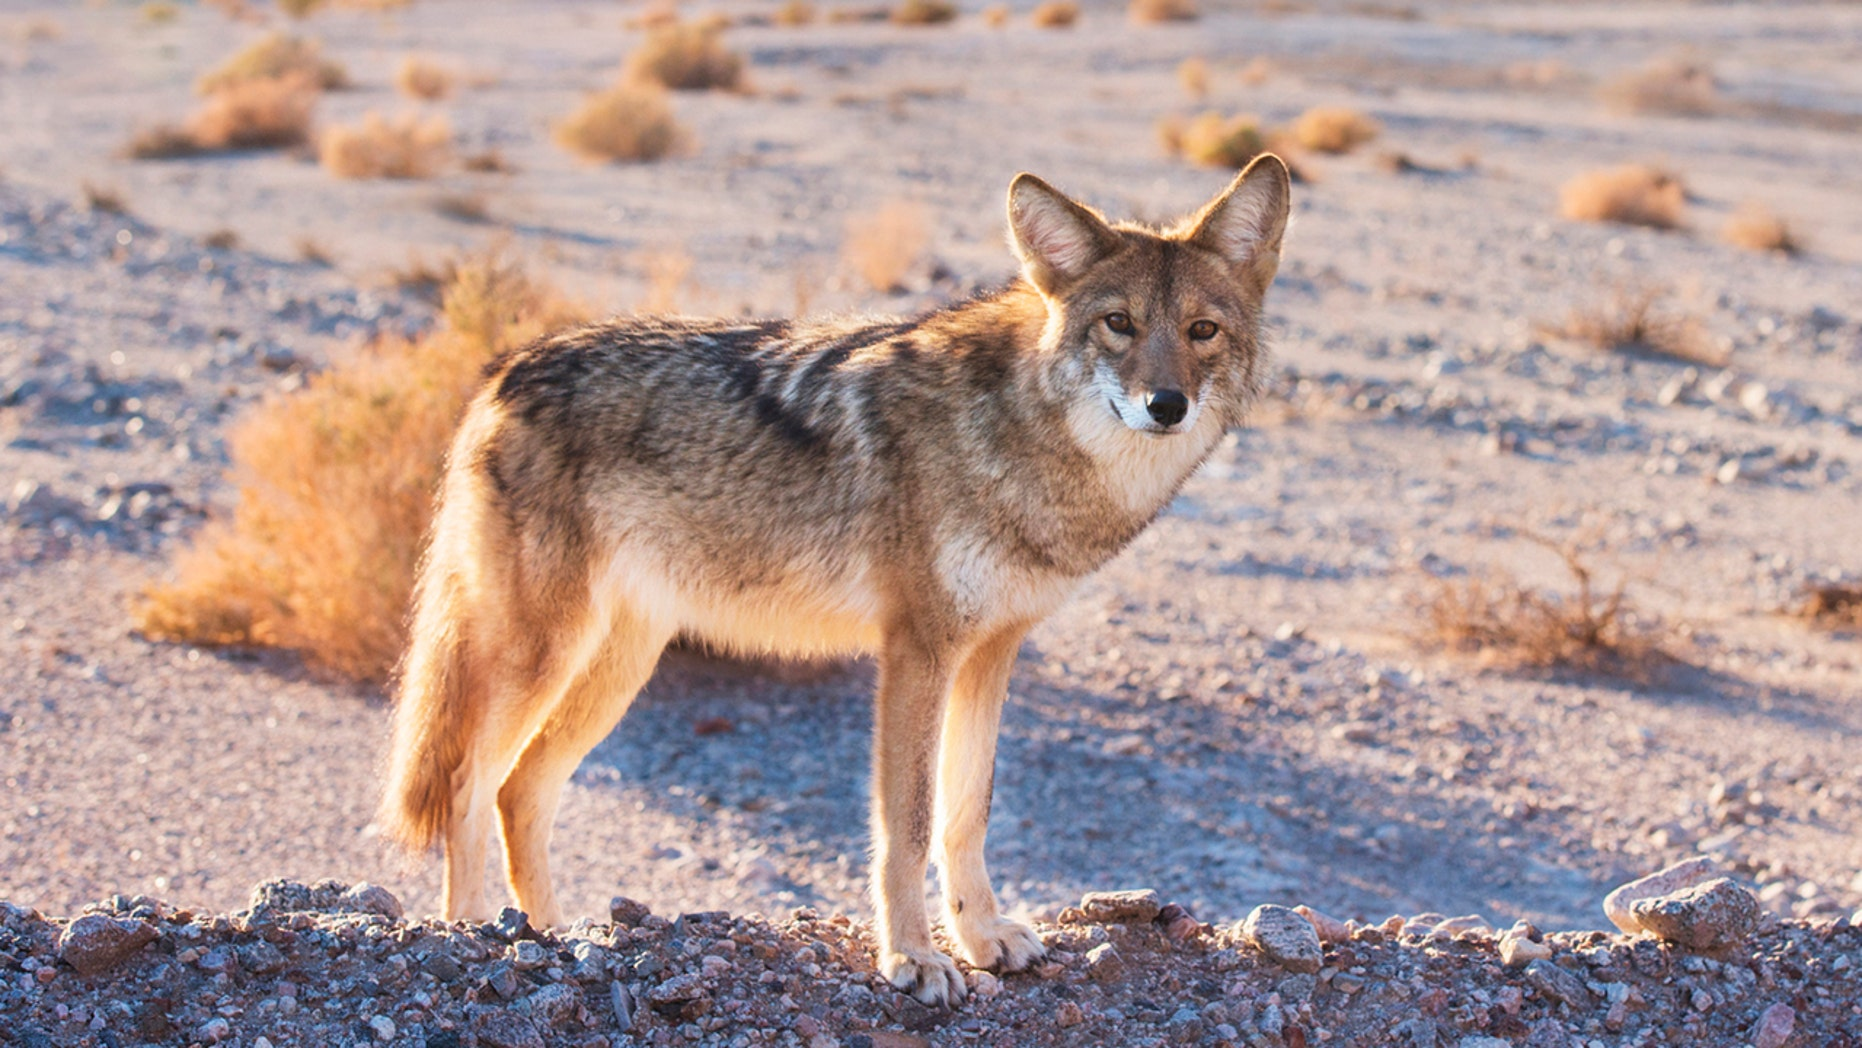 The coyote later tested positive for rabies, officials said.